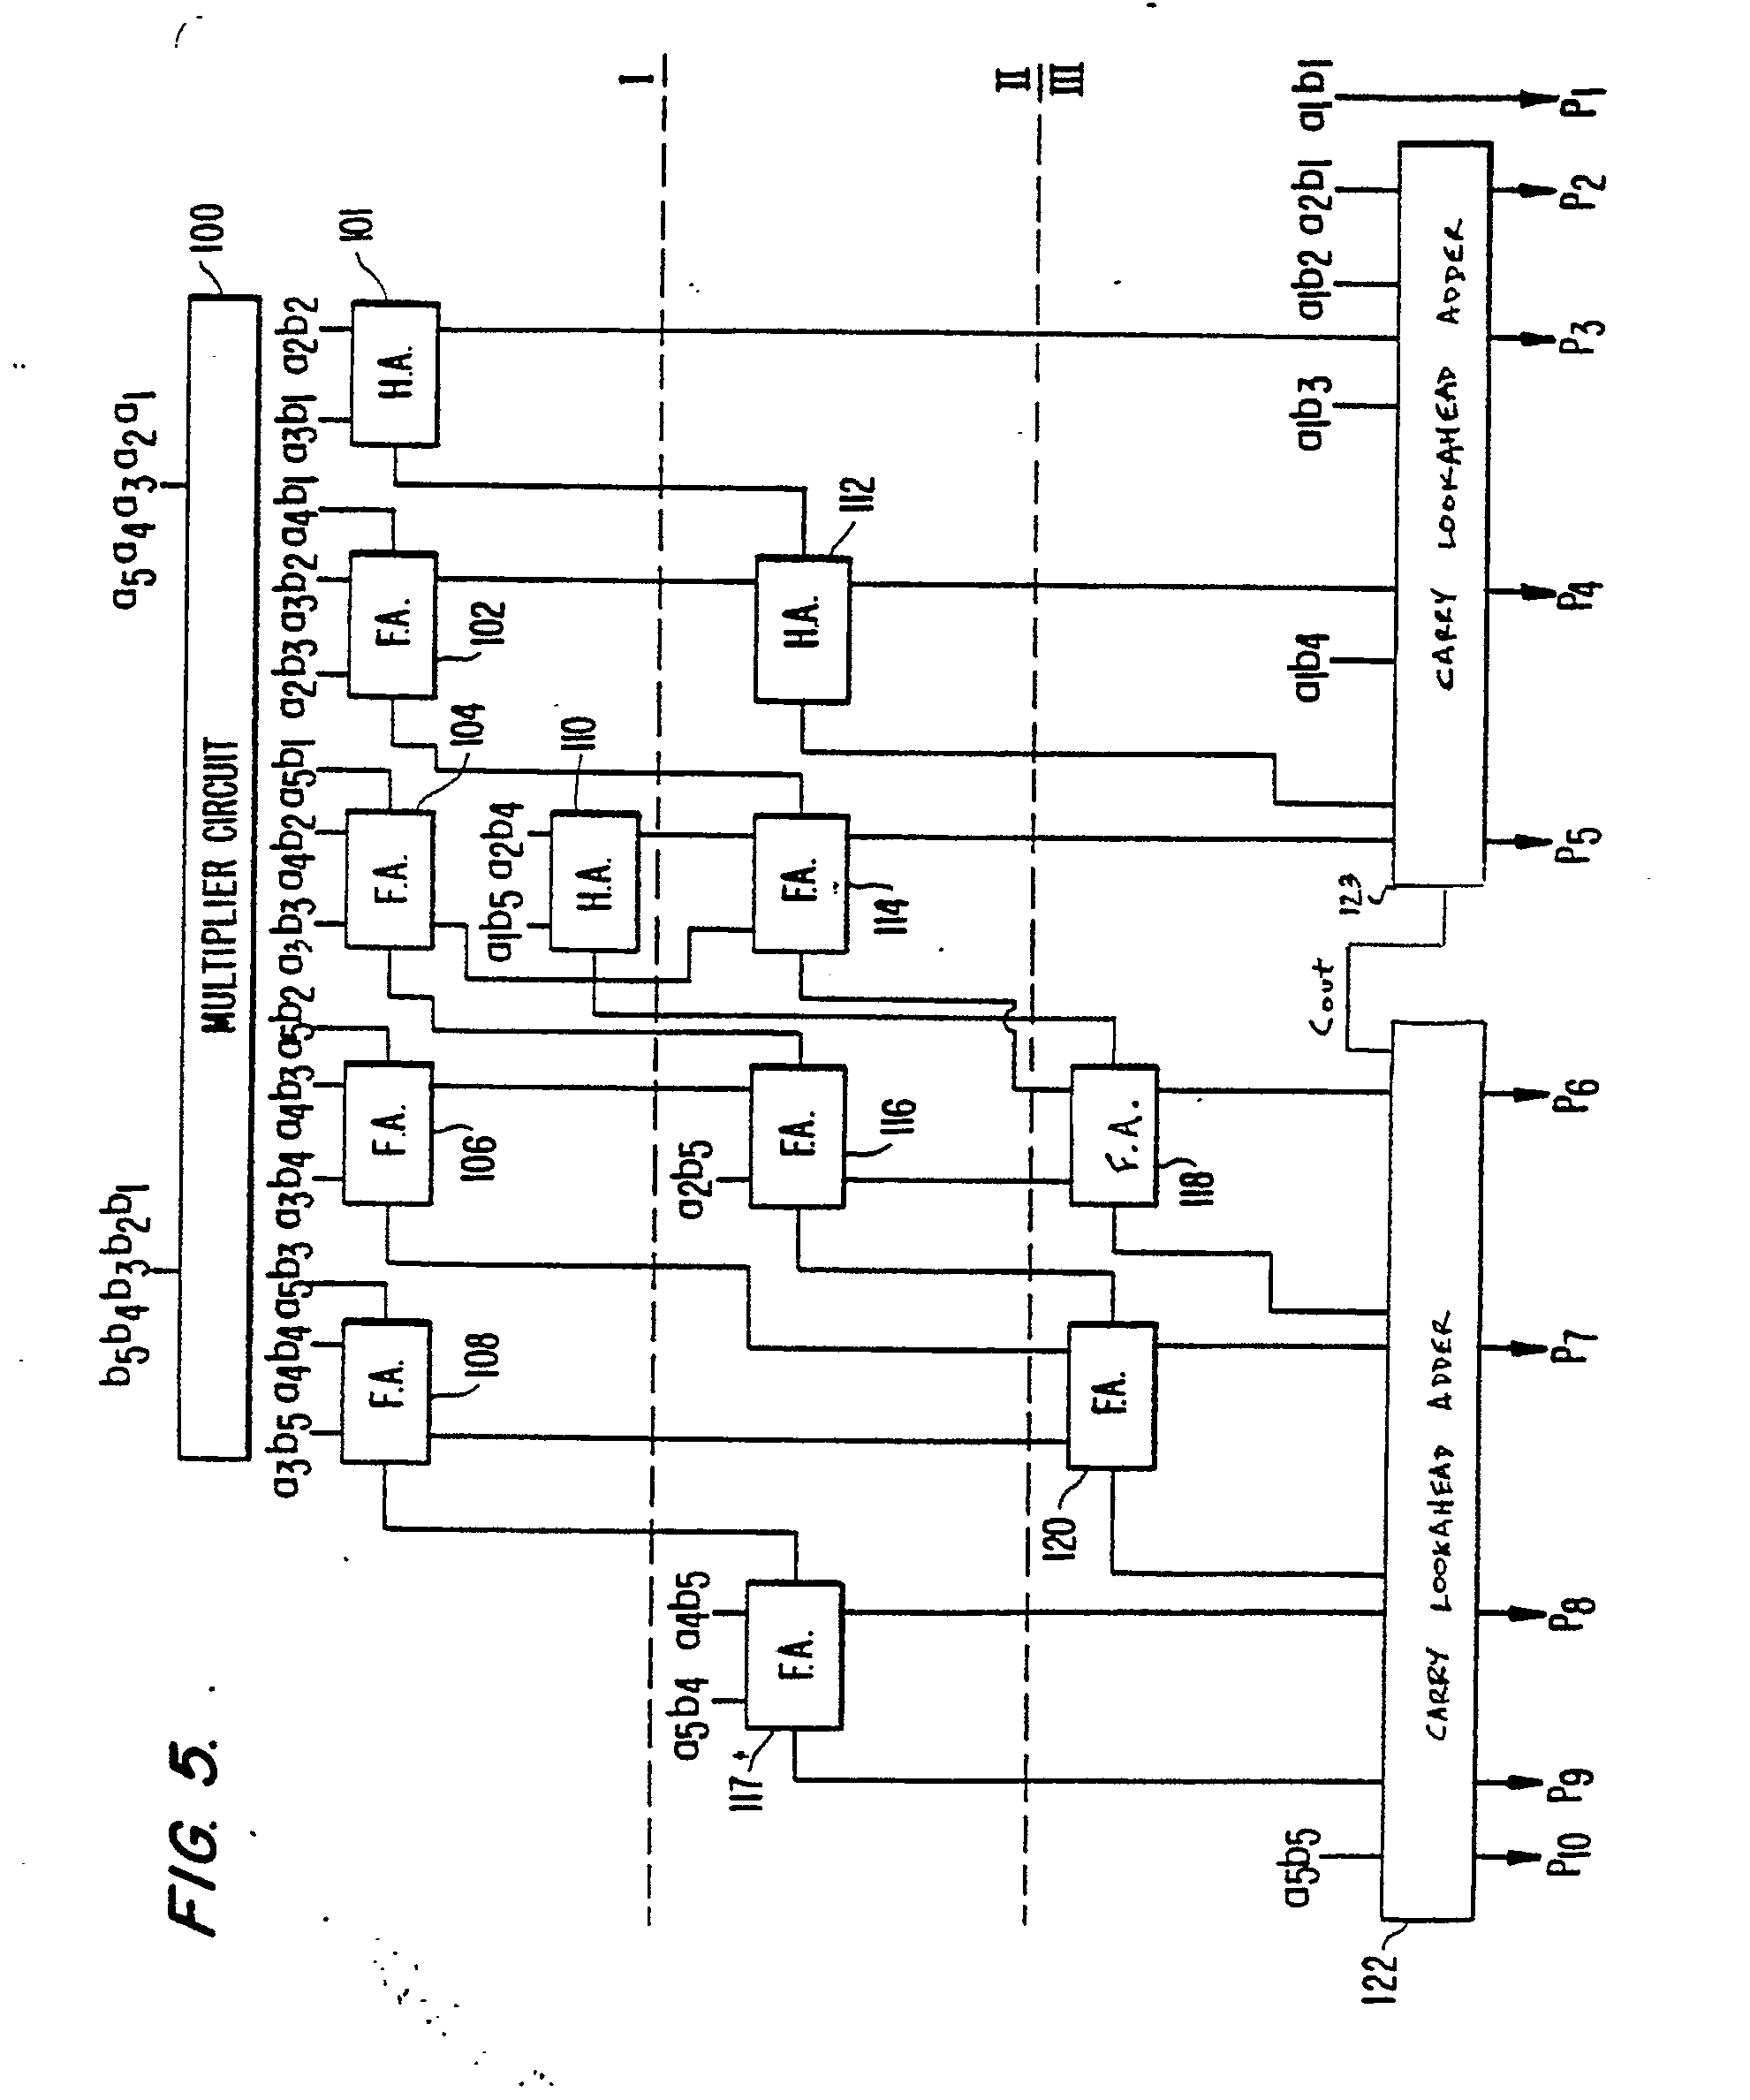 patent ep0405723a2 - high speed parallel multiplier circuit